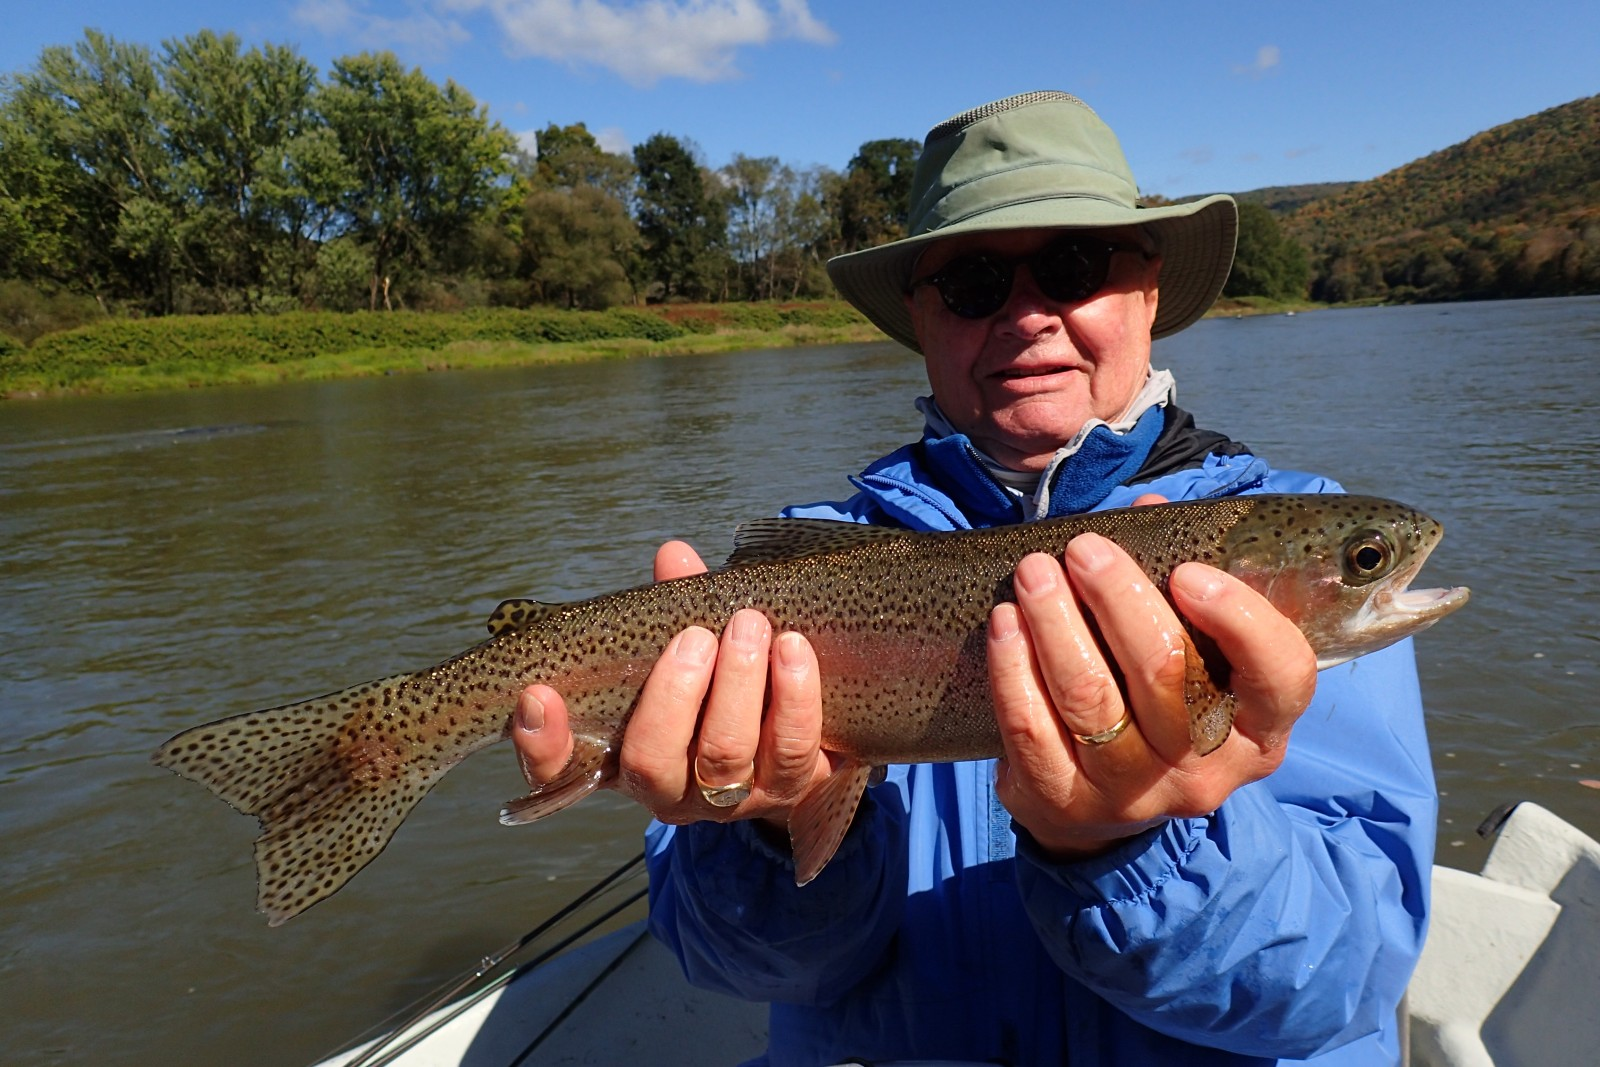 guided fly fishing trips on the delaware river for big trout with filingo fly fishing